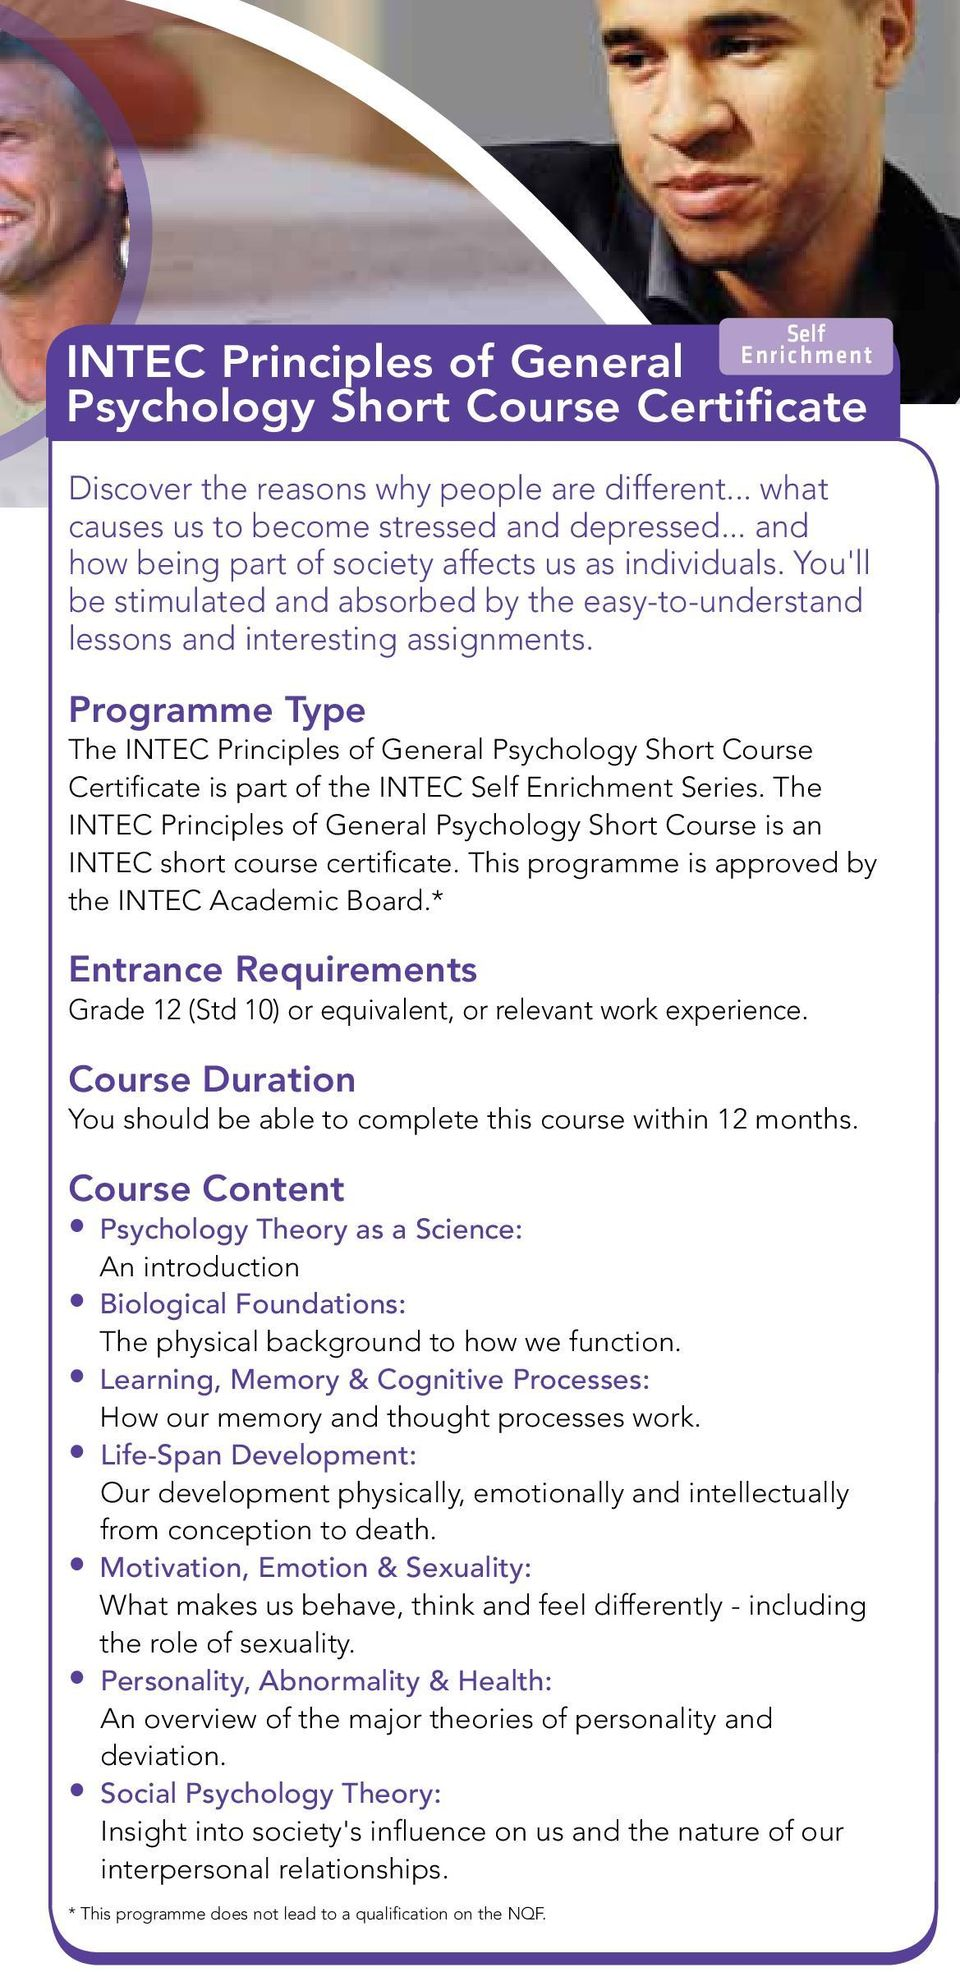 Programme Type The INTEC Principles of General Psychology Short Course Certificate is part of the INTEC Self Enrichment Series.